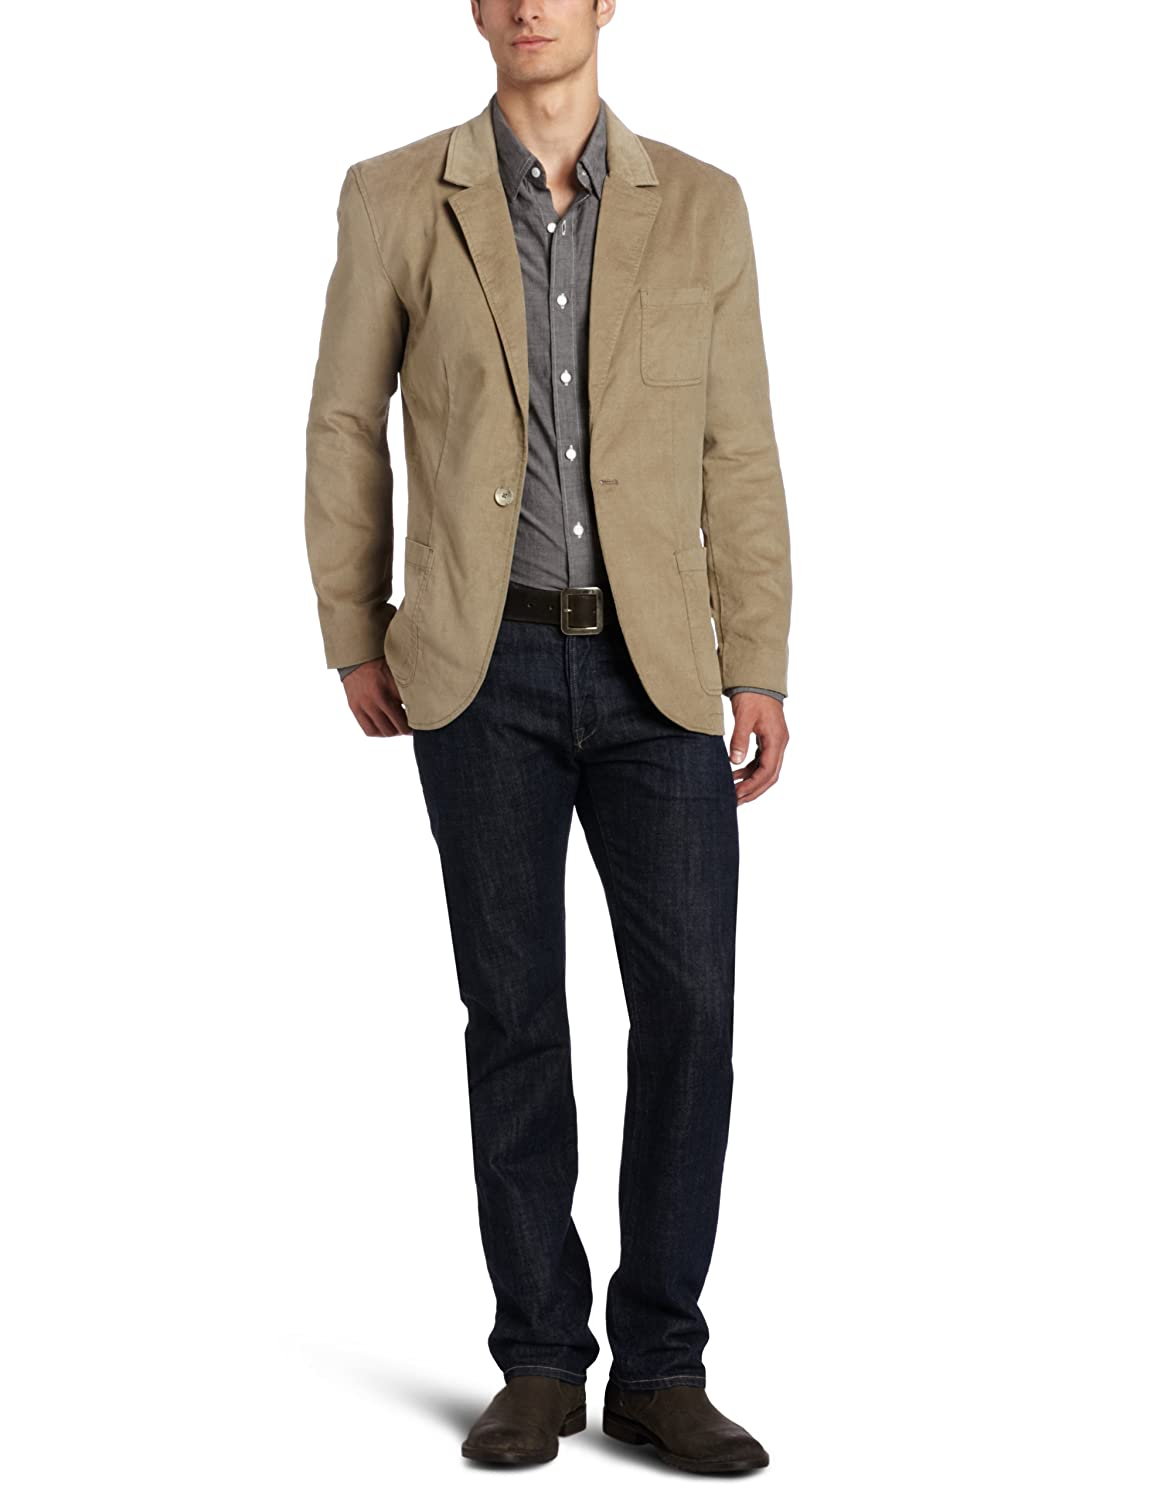 Find great deals on eBay for mens jeans blazers. Shop with confidence.